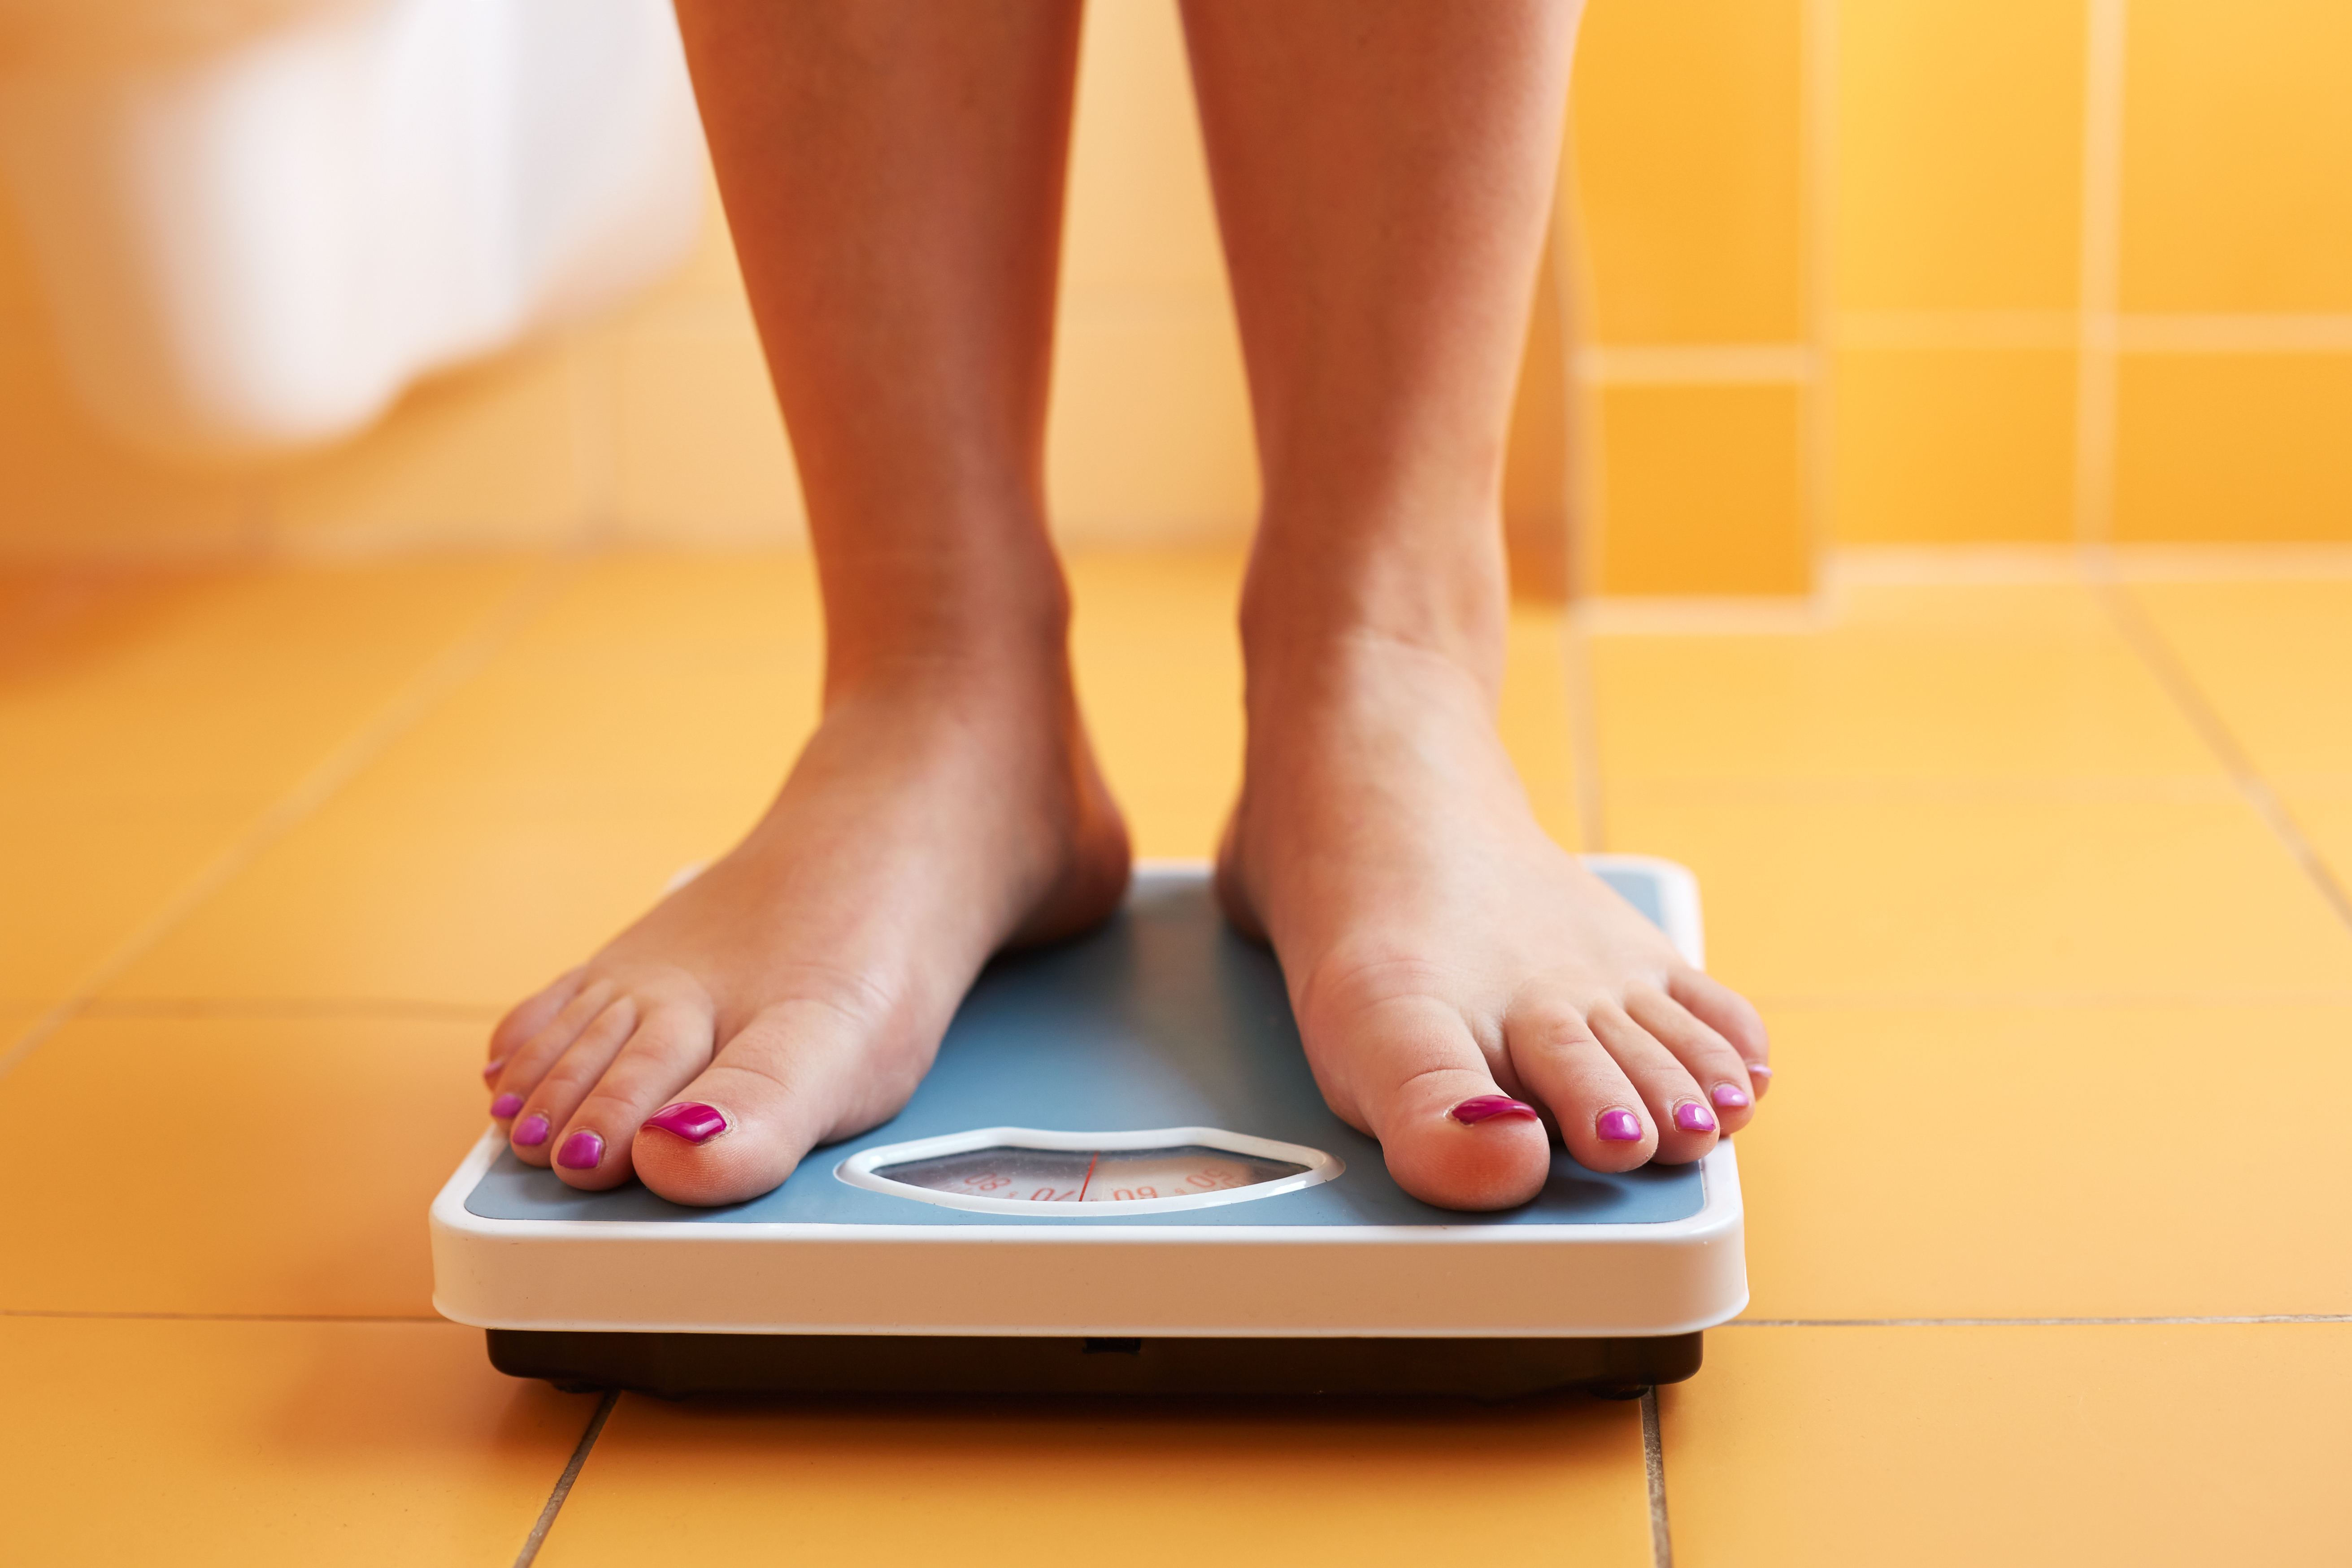 Most accurate bathroom scale 2014 - Weight Loss Trick Using Bathroom Scale For Daily Weigh Ins May Help You Slim Fast